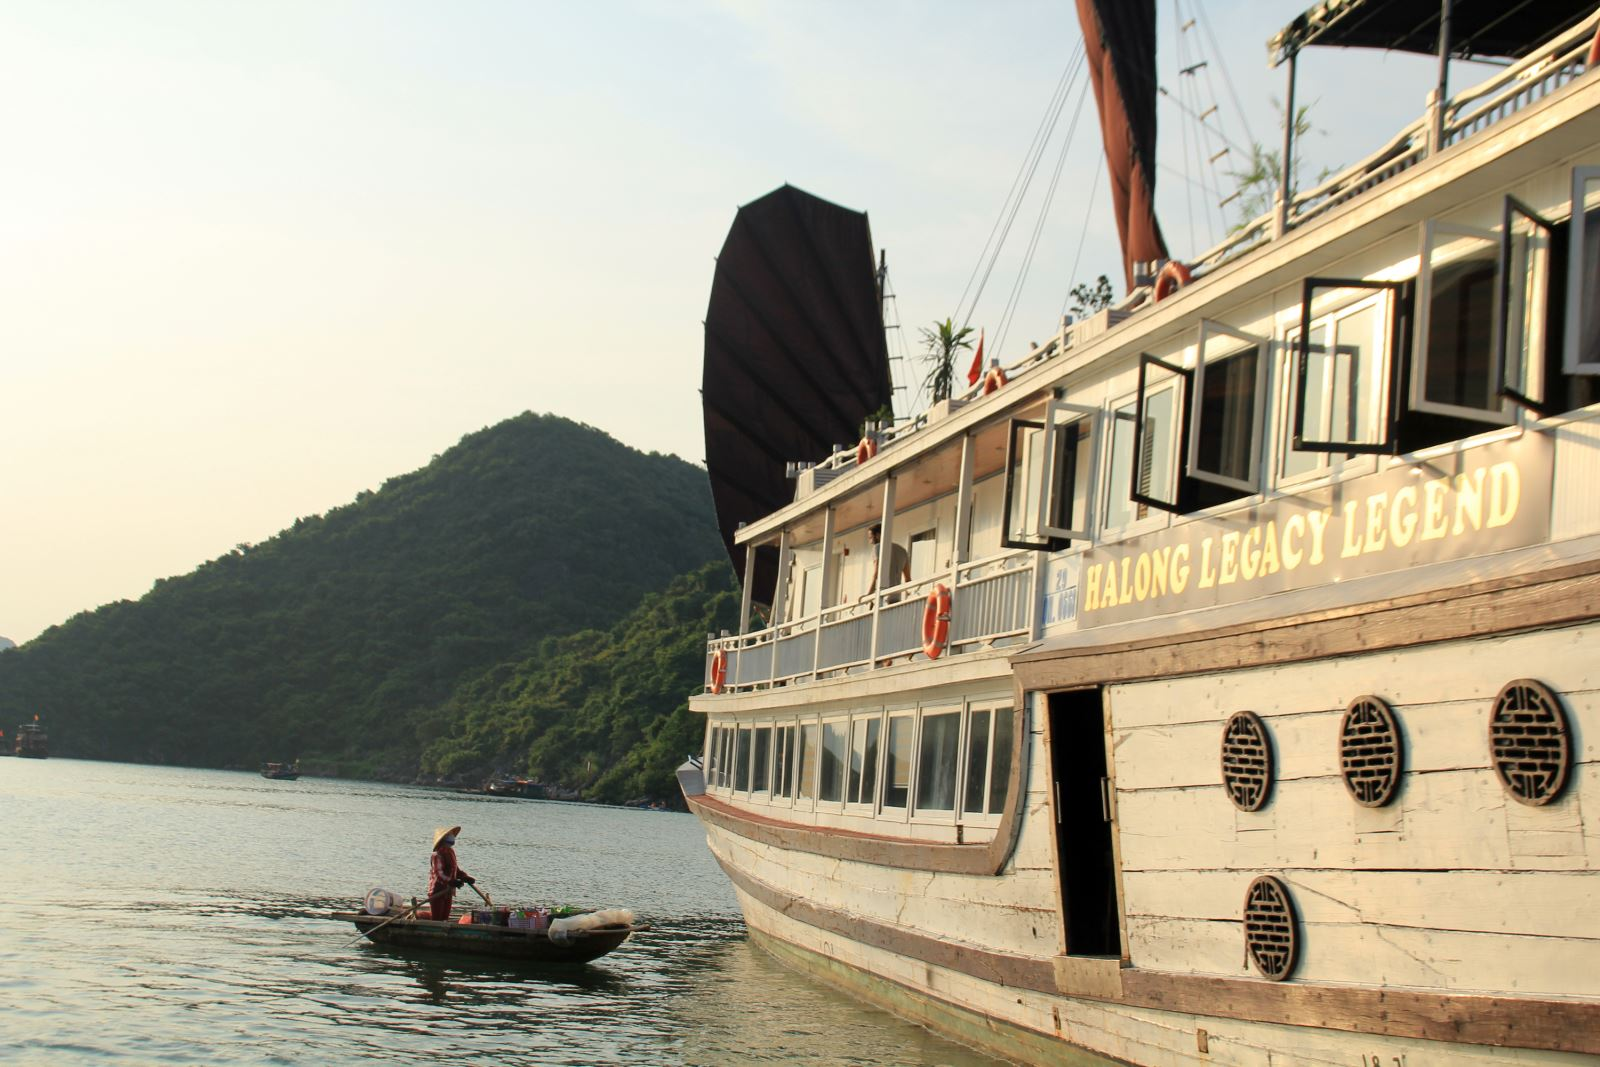 Halong Legacy legend cruise.jpg